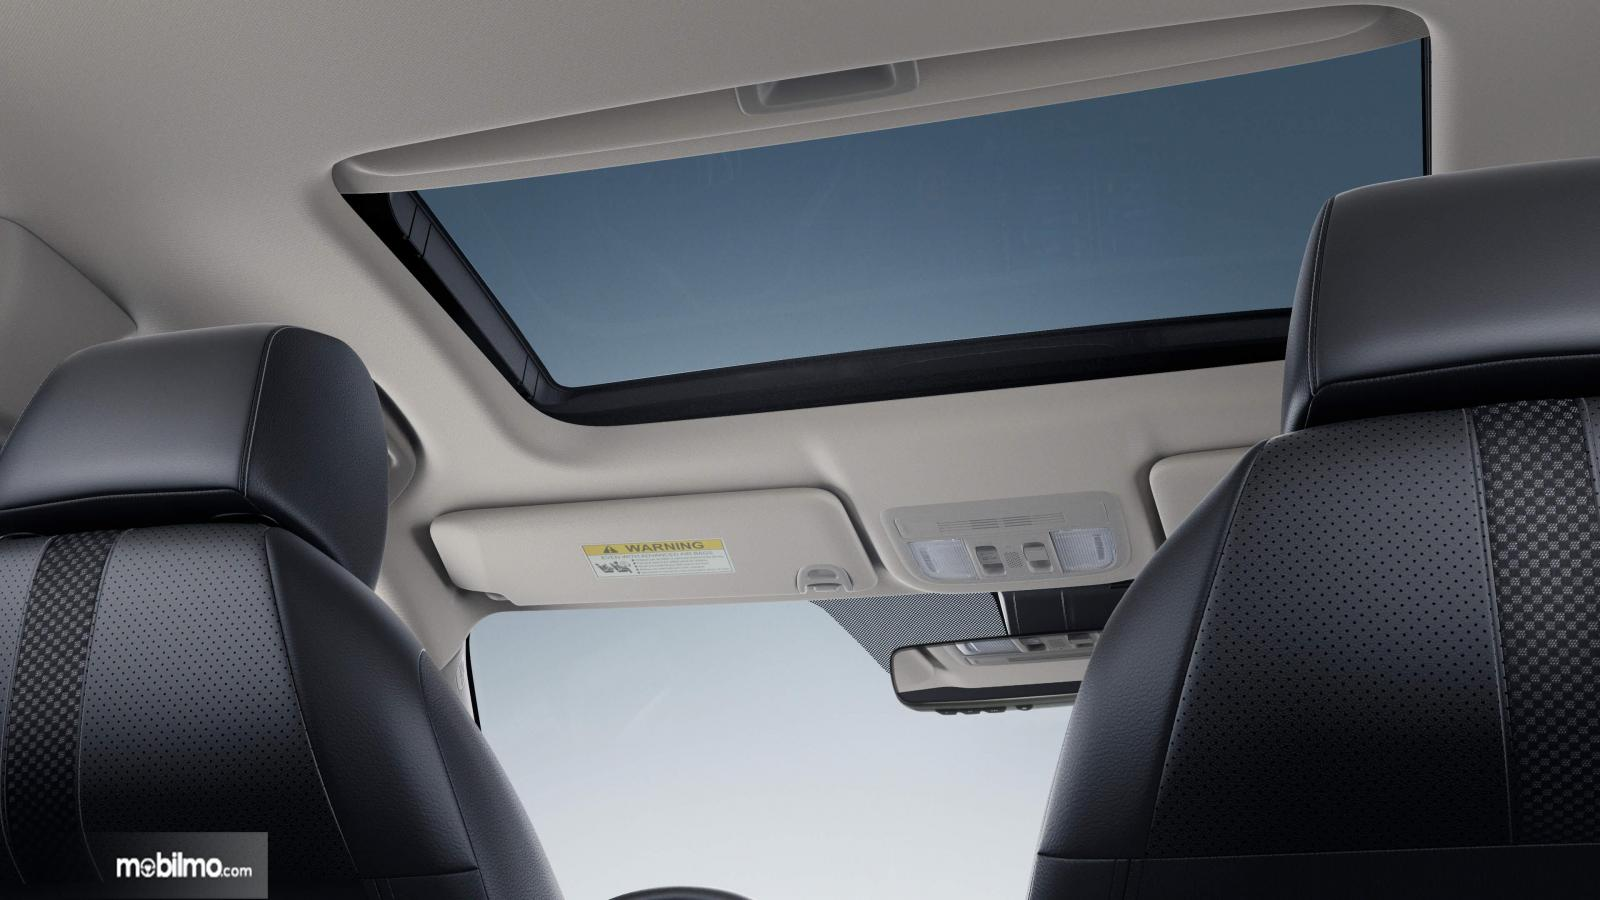 Gambar panoramic roof Honda Civic 2019